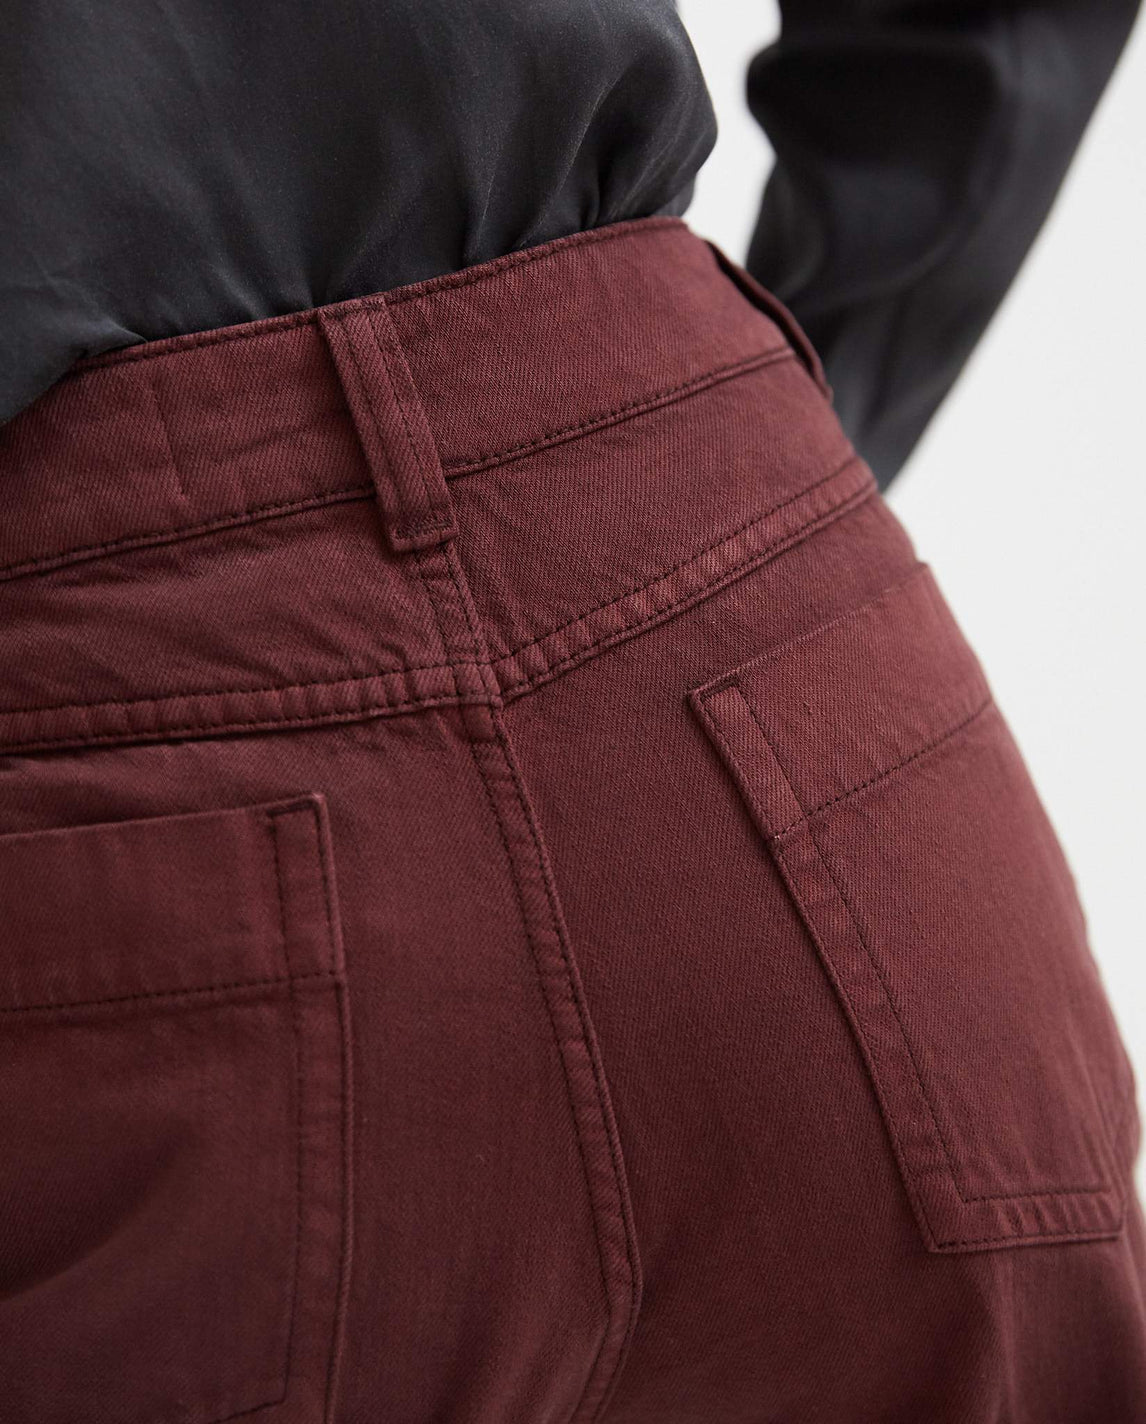 Wide Leg Denim Pants - Wine Red WOMENS LEMAIRE